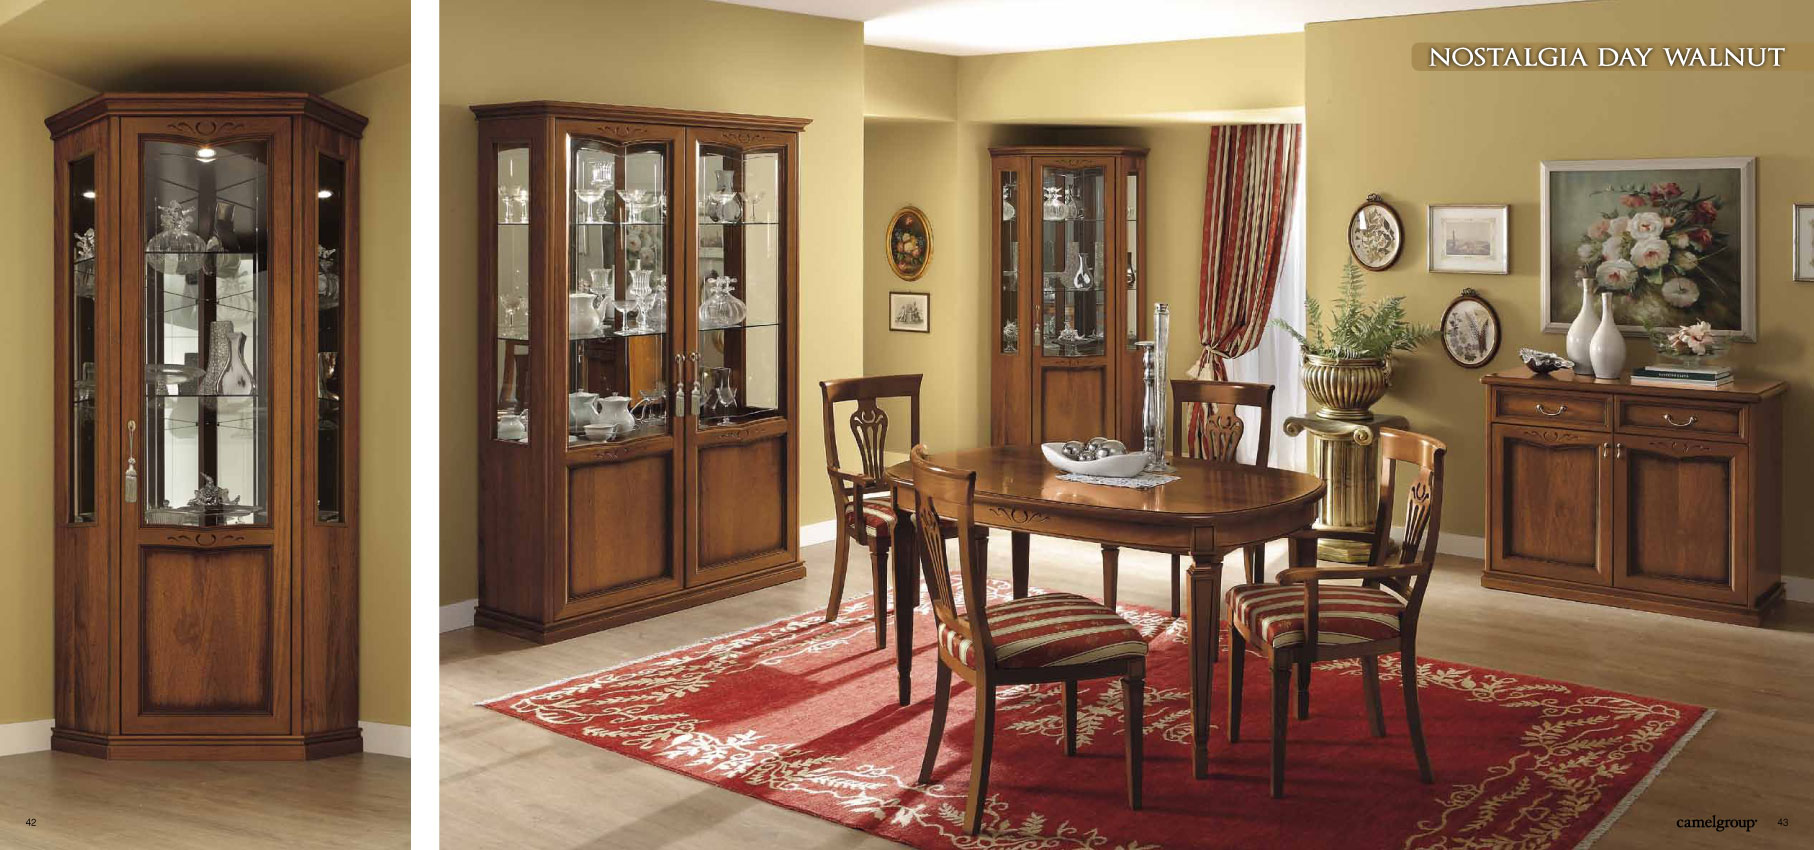 nostalgia day walnut camel traditional collection italy collections. Black Bedroom Furniture Sets. Home Design Ideas